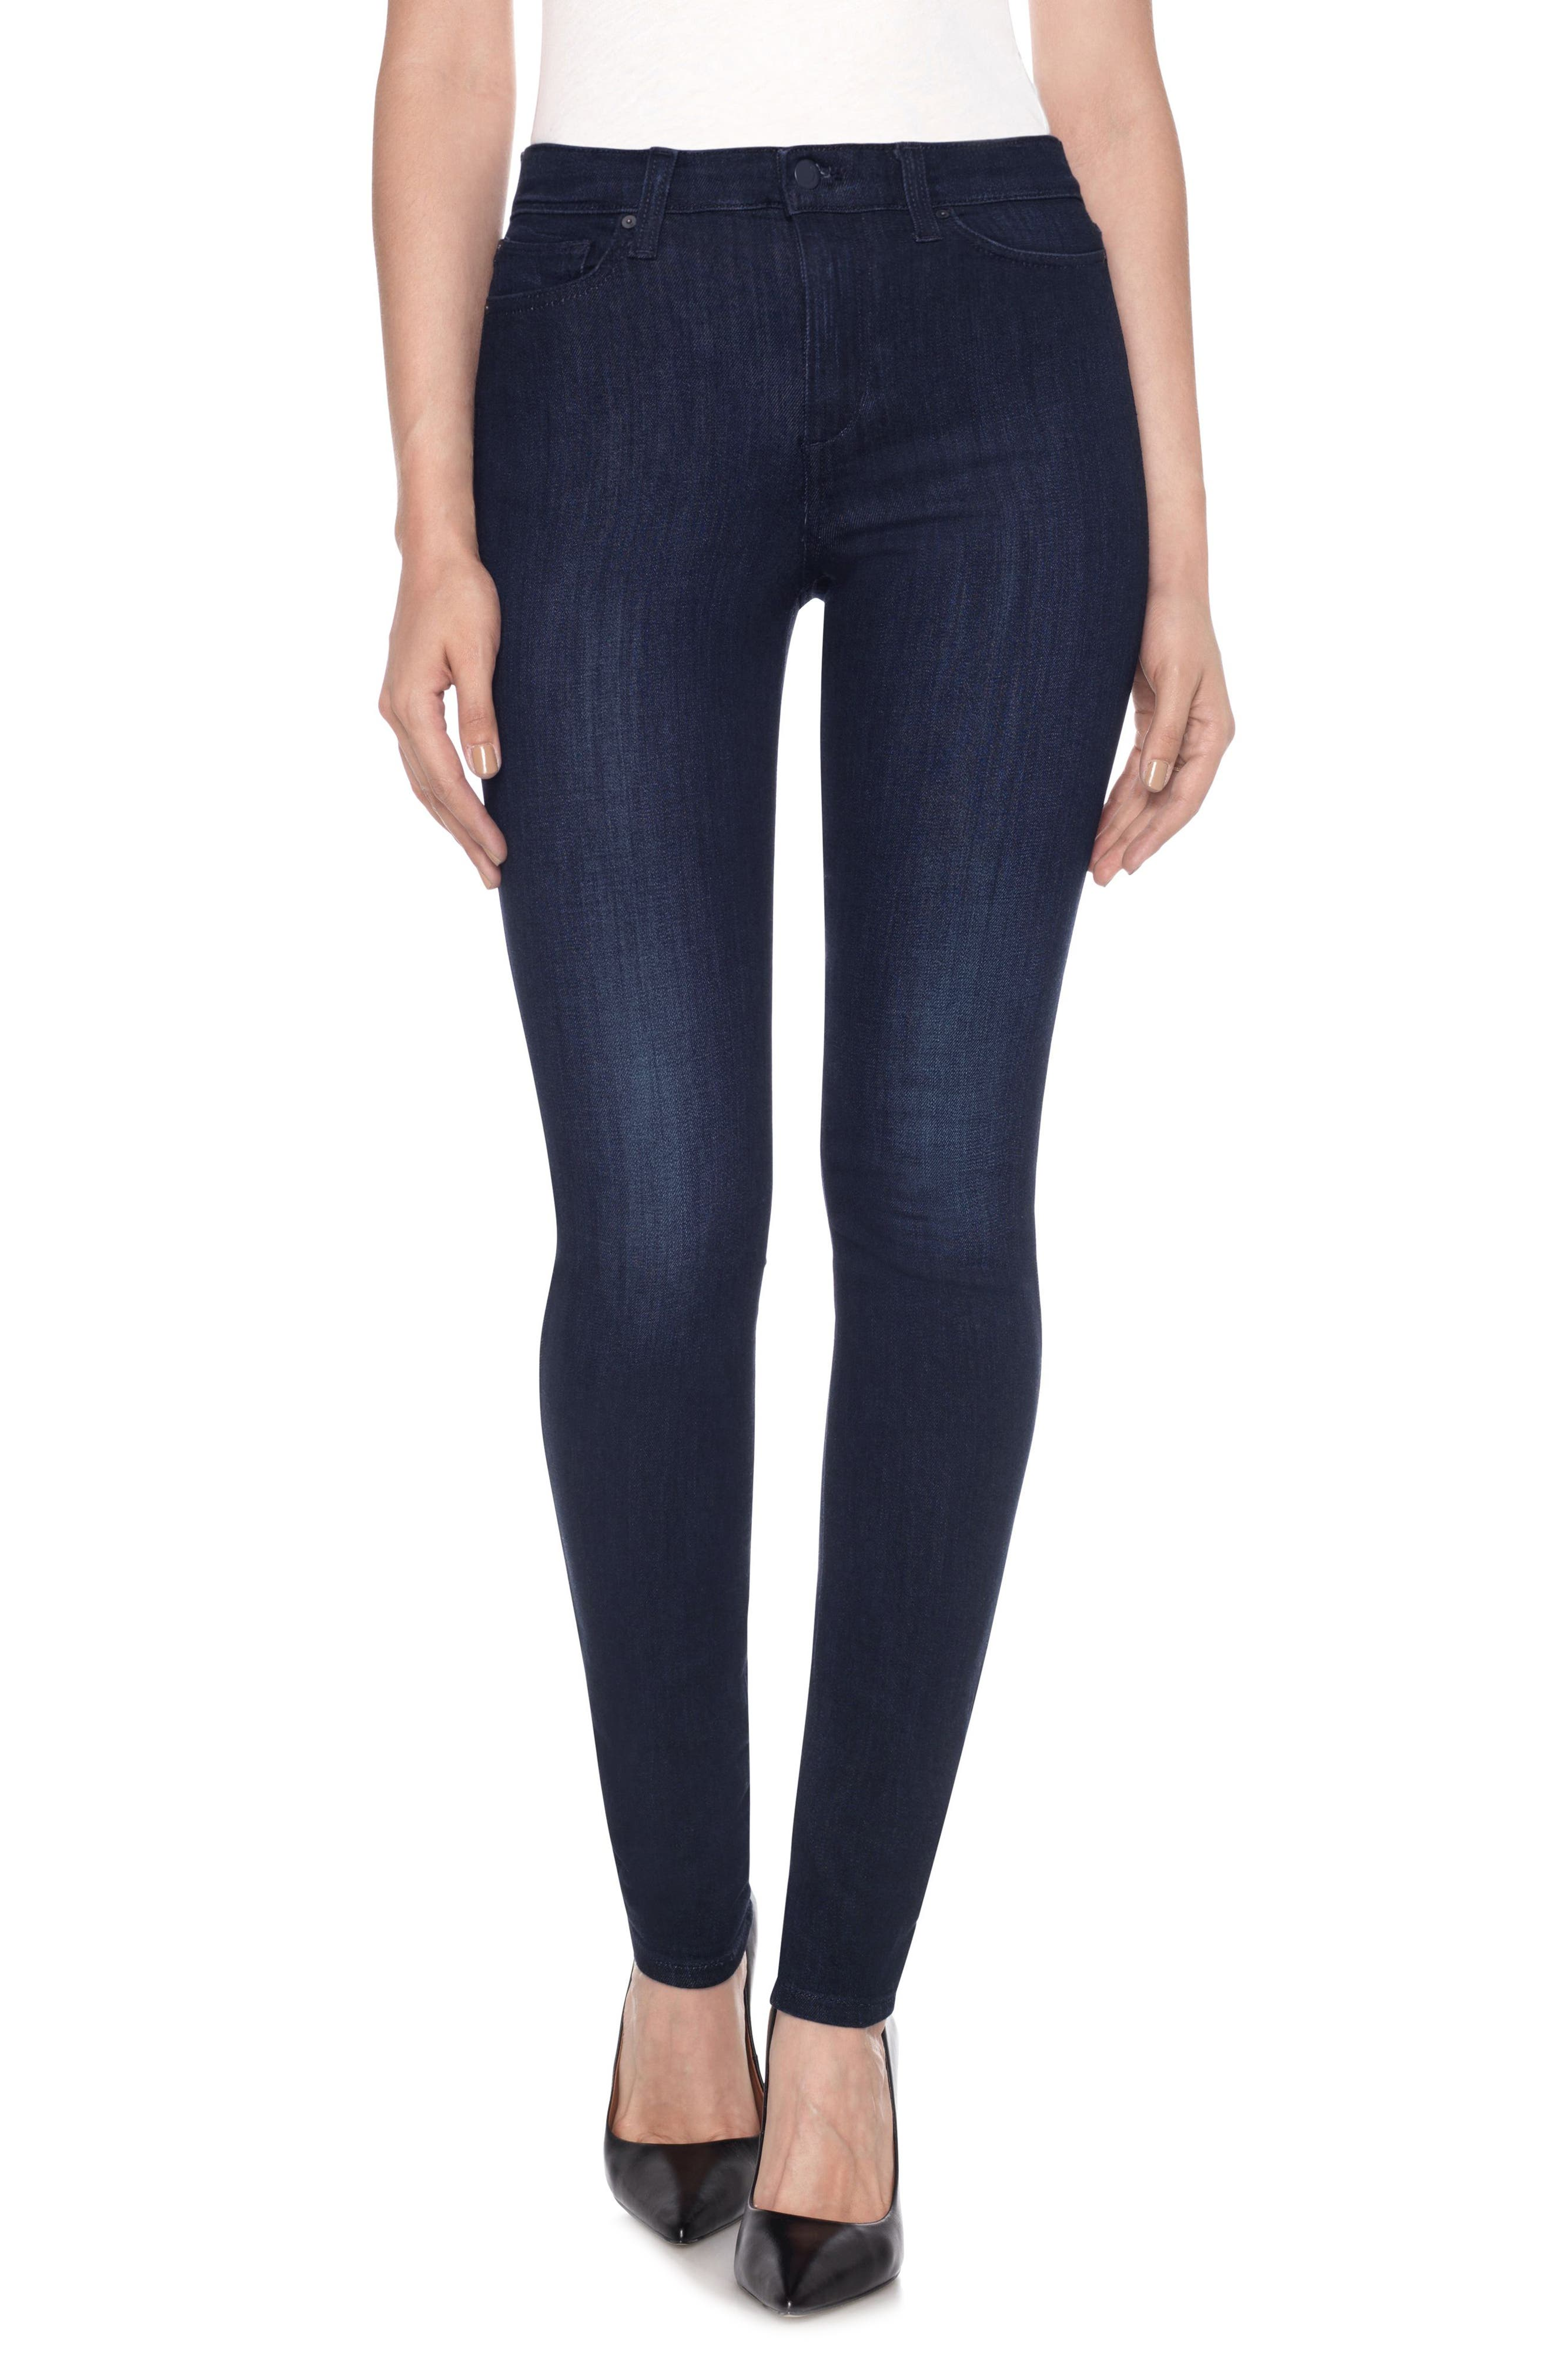 Charlie High Waist Skinny Jeans,                             Main thumbnail 1, color,                             400